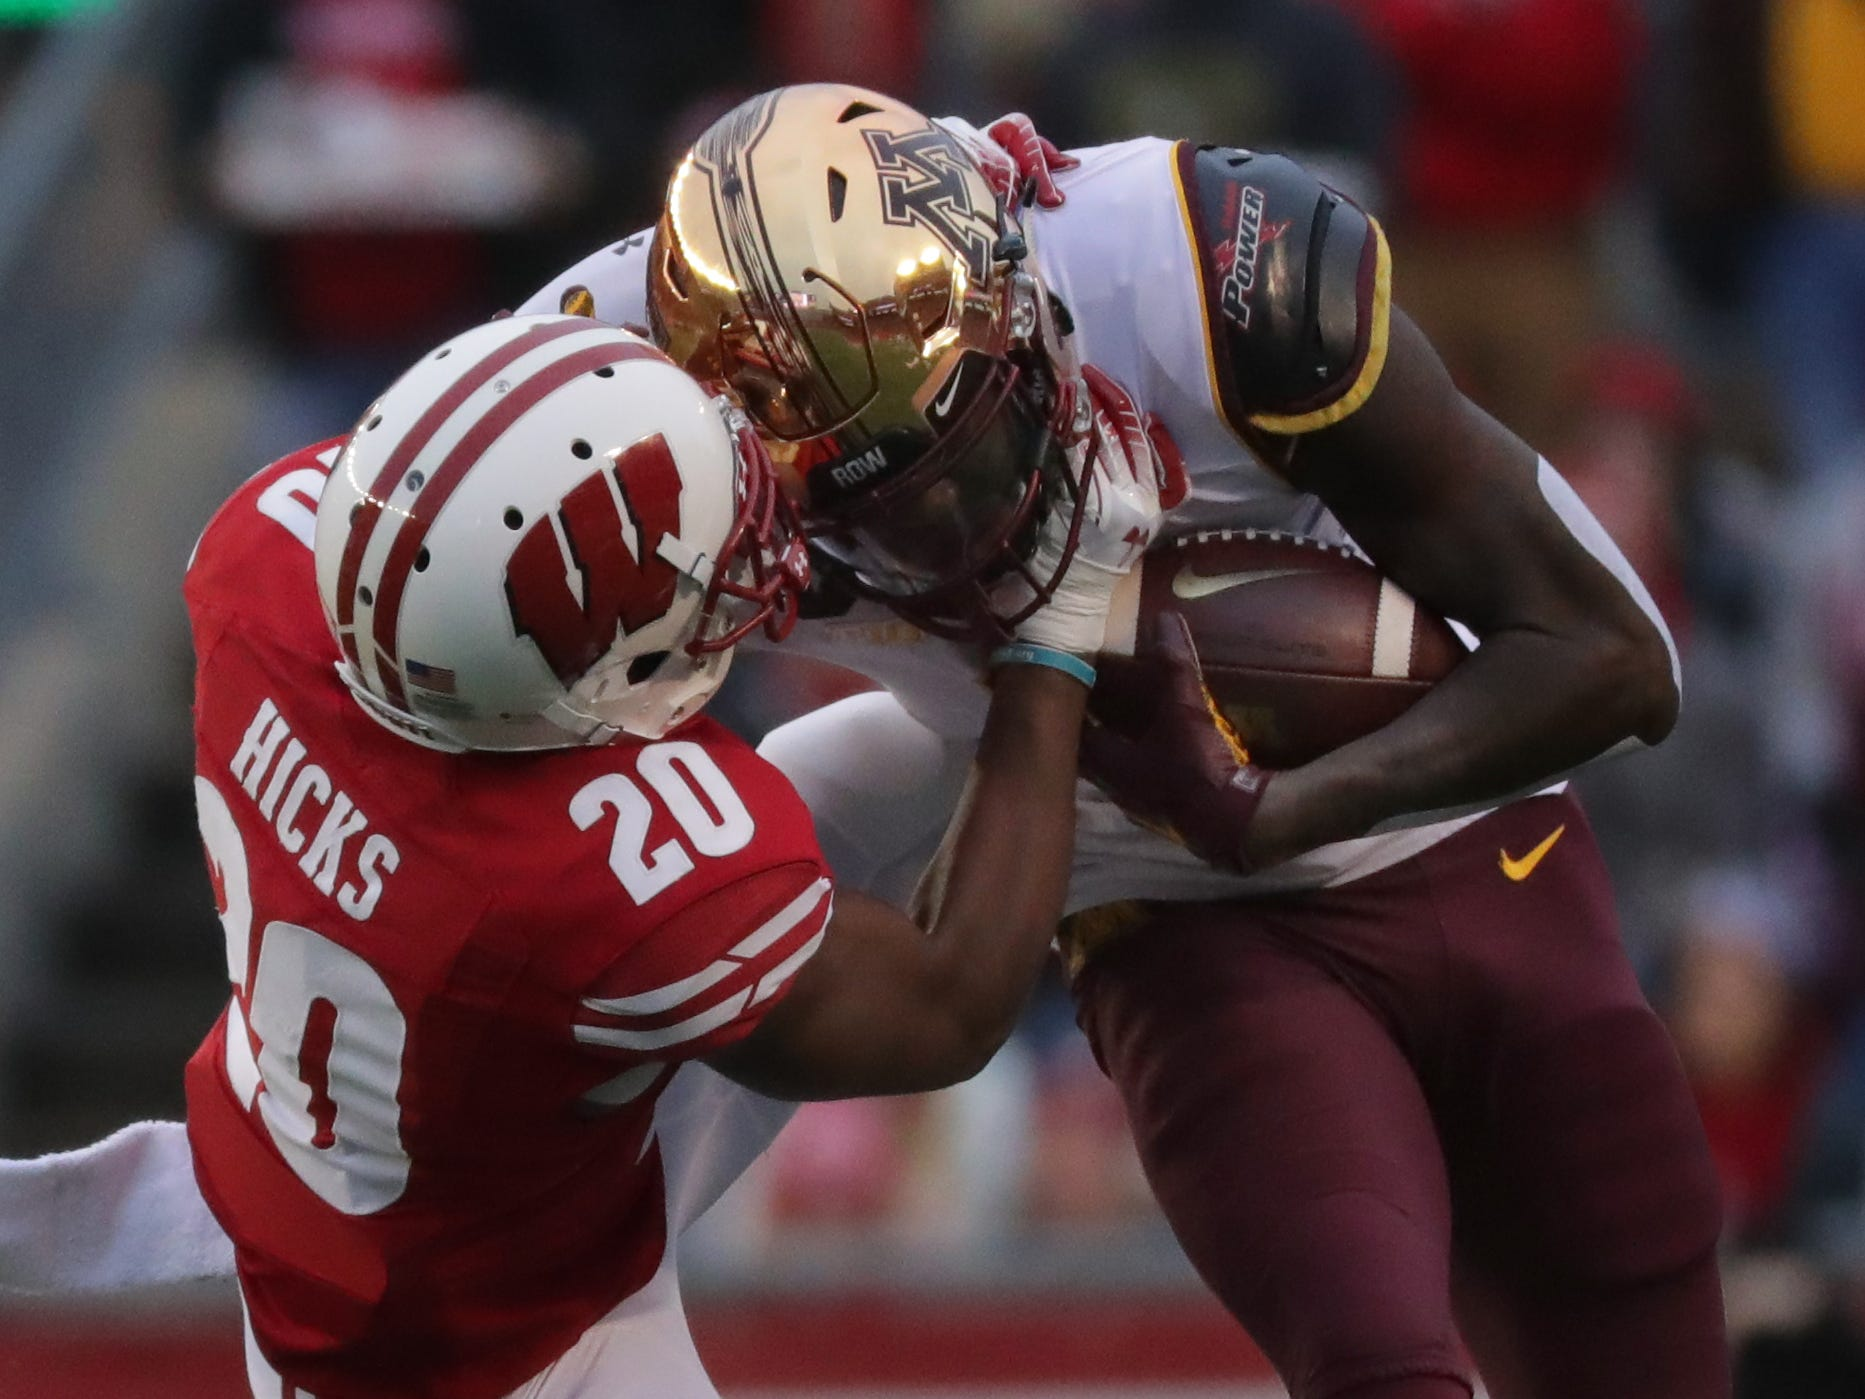 Wisconsin cornerback Faion Hicks brings down Minnesota wide receiver Tyler Johnson at the end of a 23-yard reception during the first quarter Saturday.